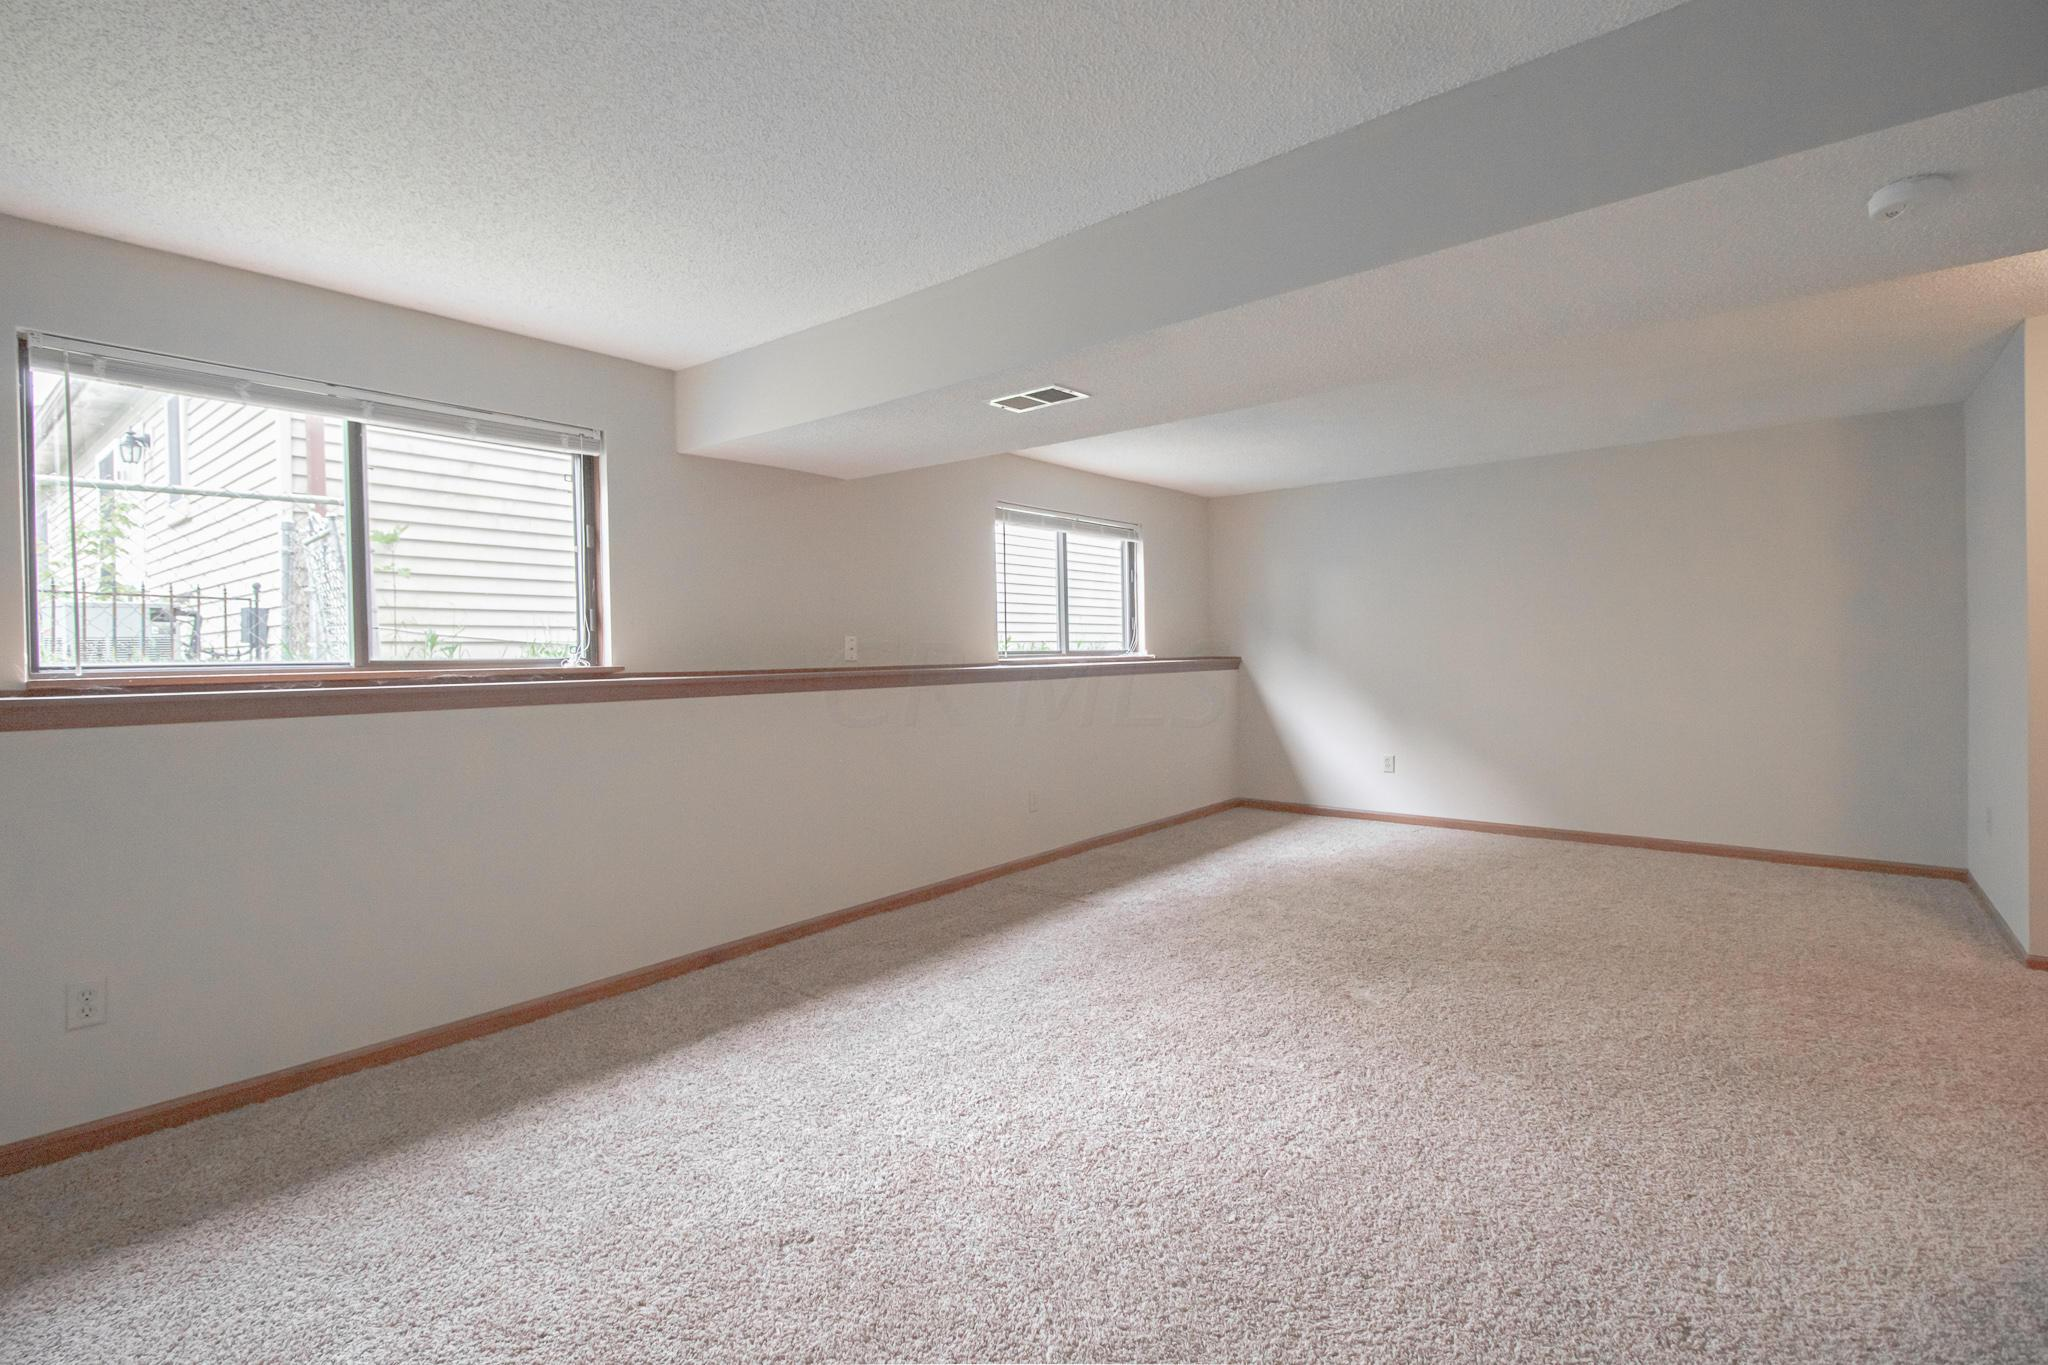 4440 Ramsdell Drive, Columbus, Ohio 43231, 3 Bedrooms Bedrooms, ,2 BathroomsBathrooms,Residential,For Sale,Ramsdell,220016557